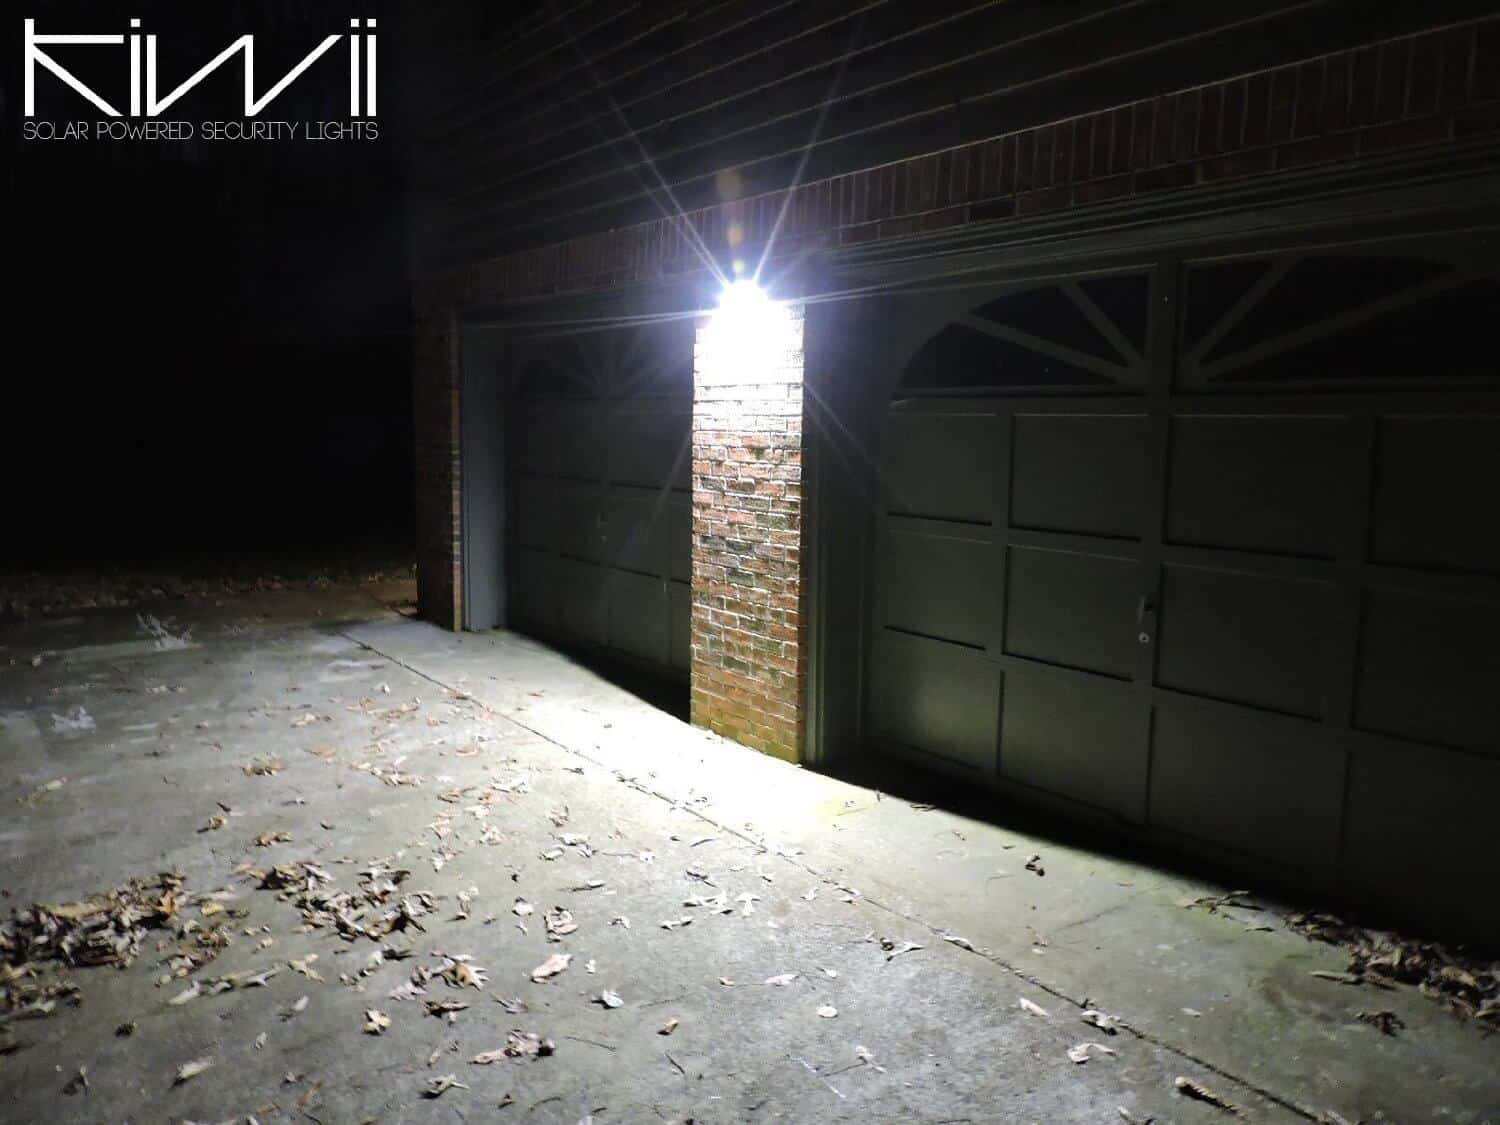 Solar powered security lights by Kiwii